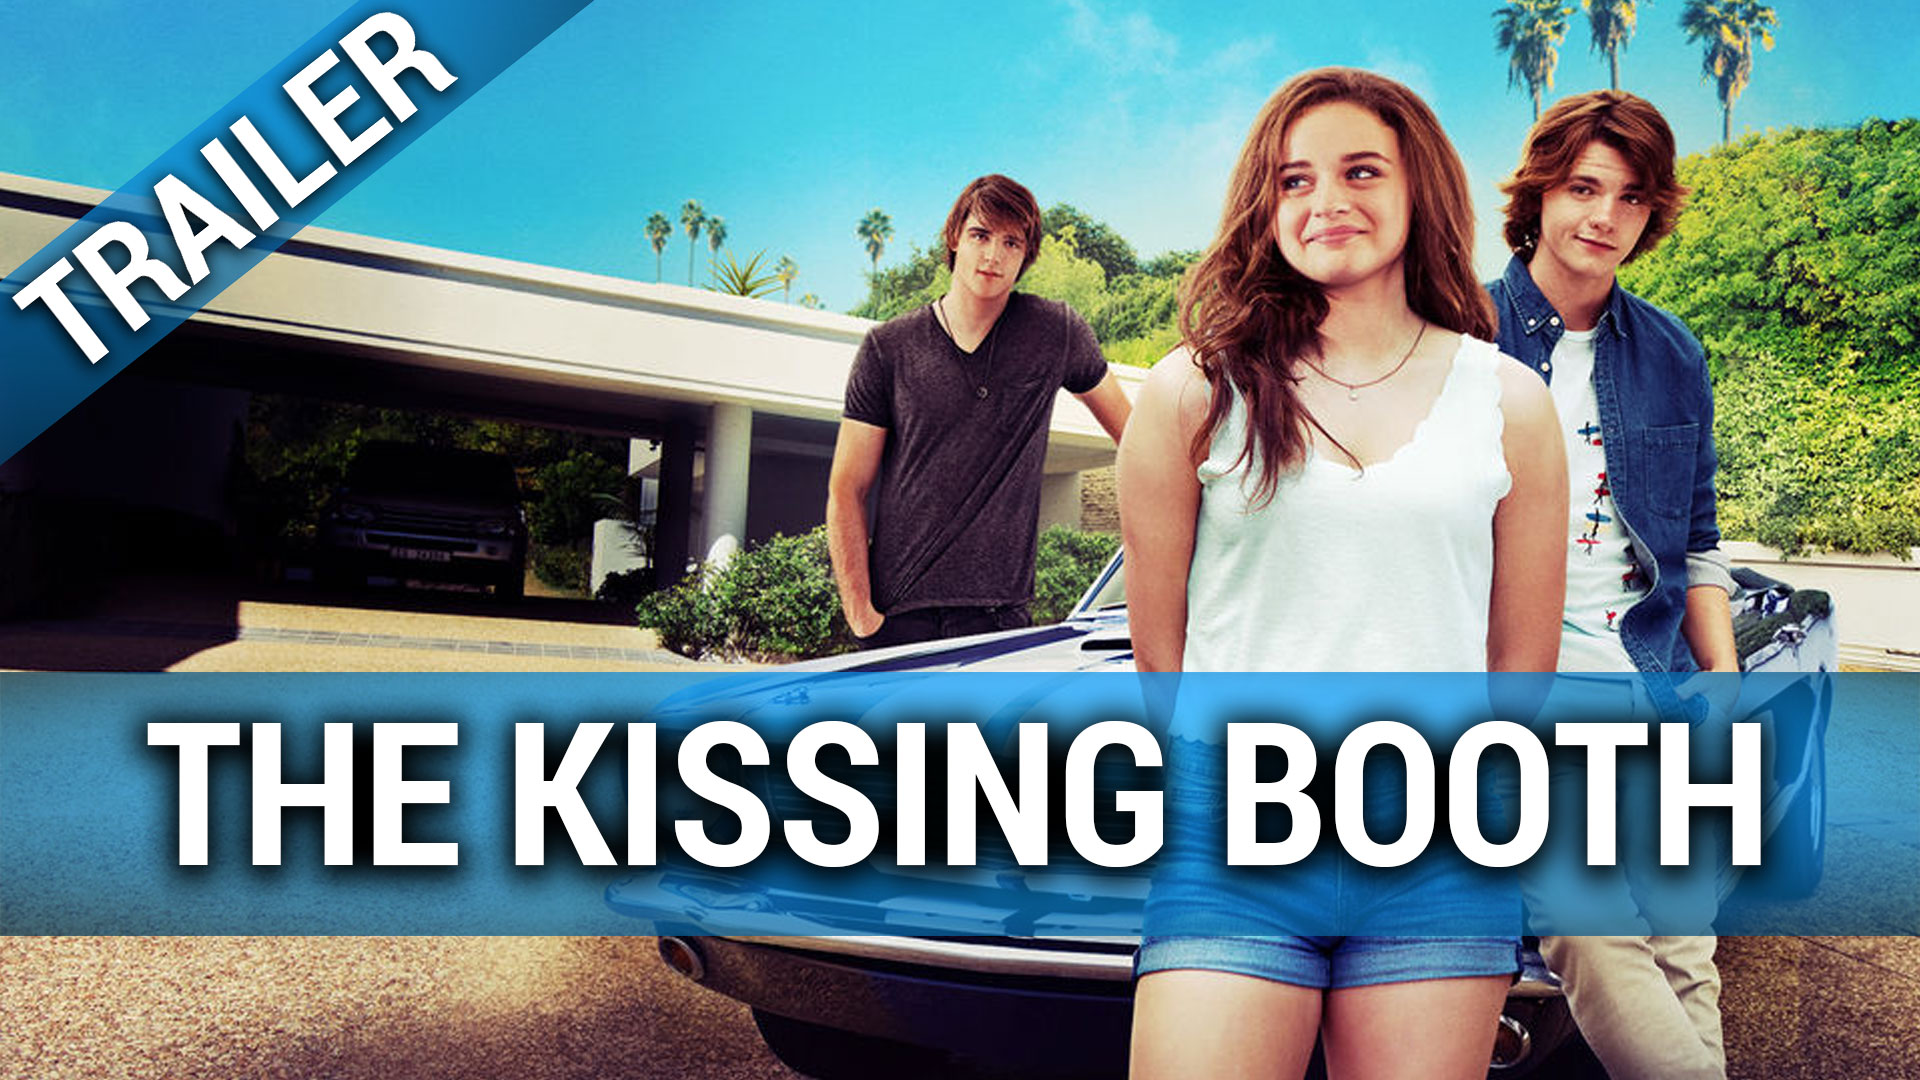 kommt kissing booth 2 raus